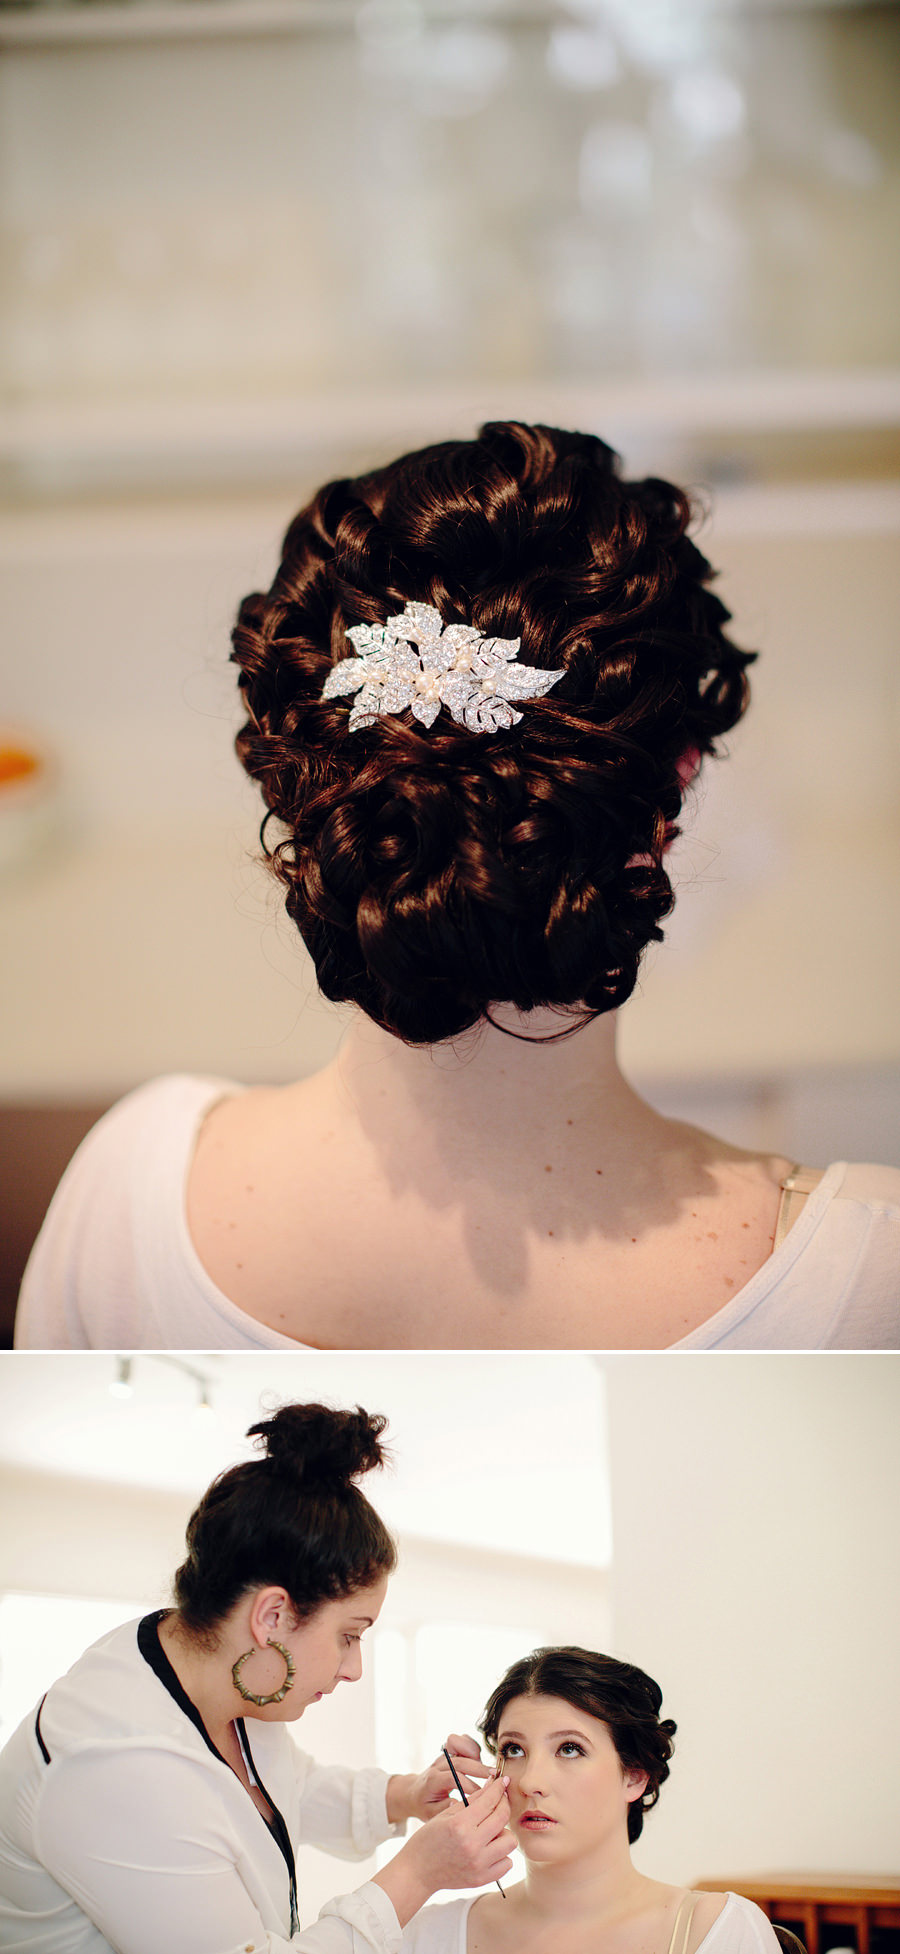 Lifdfield Wedding Photography: Hair & makeup